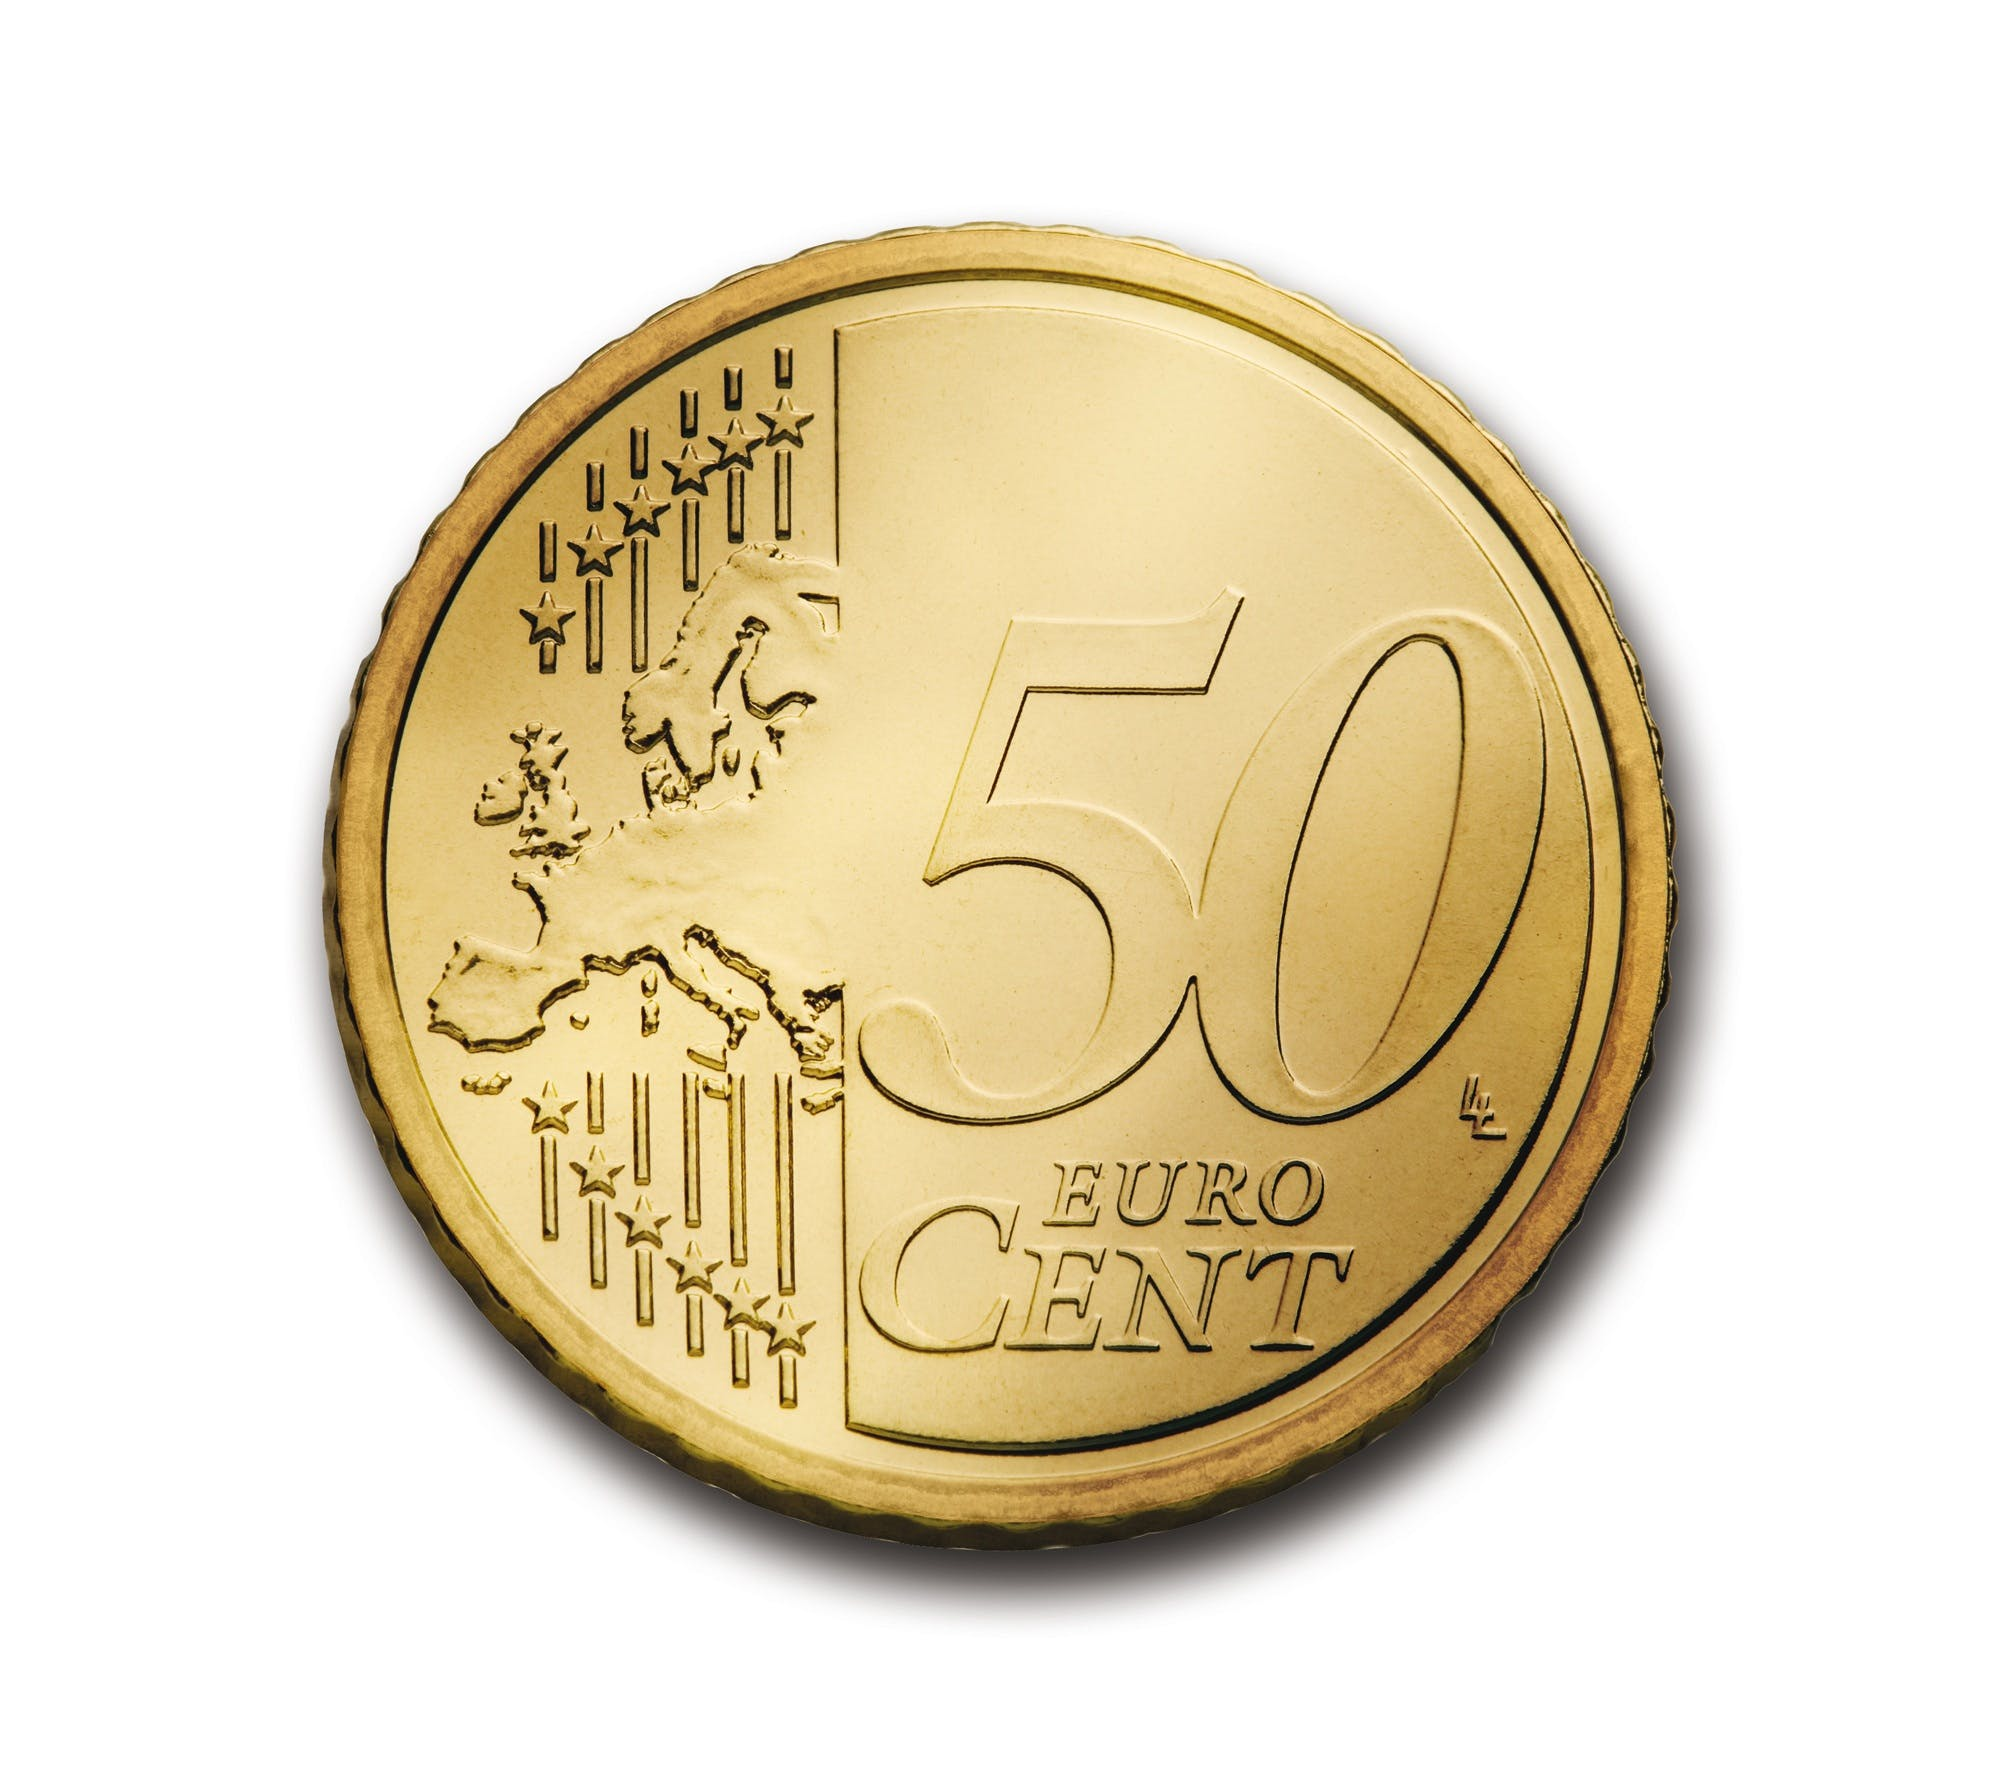 Round Gold-colored 50 Euro Cent Coin on White Surface